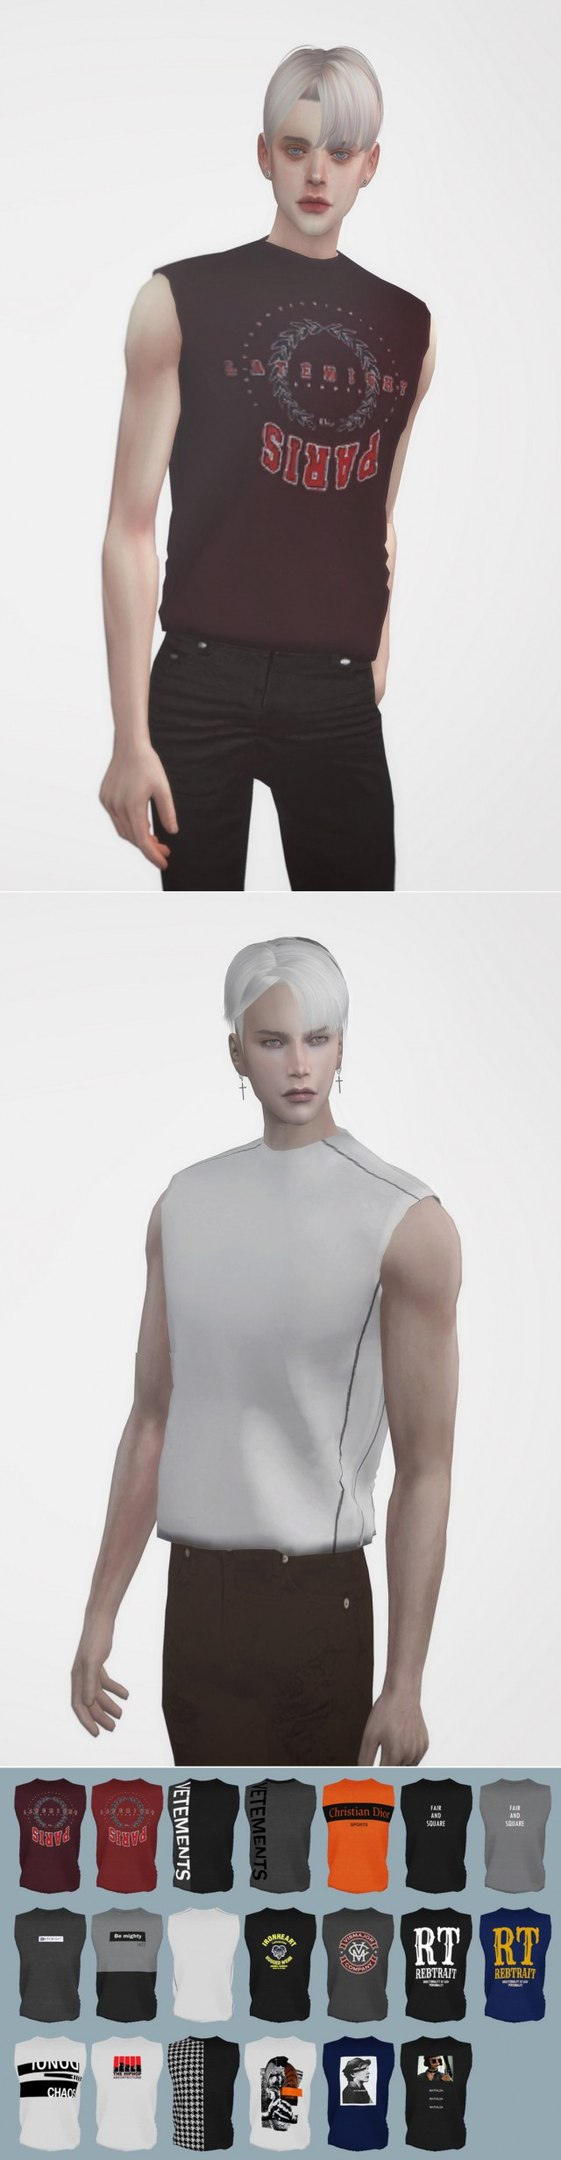 AM Sleeveless Tops by CALEB